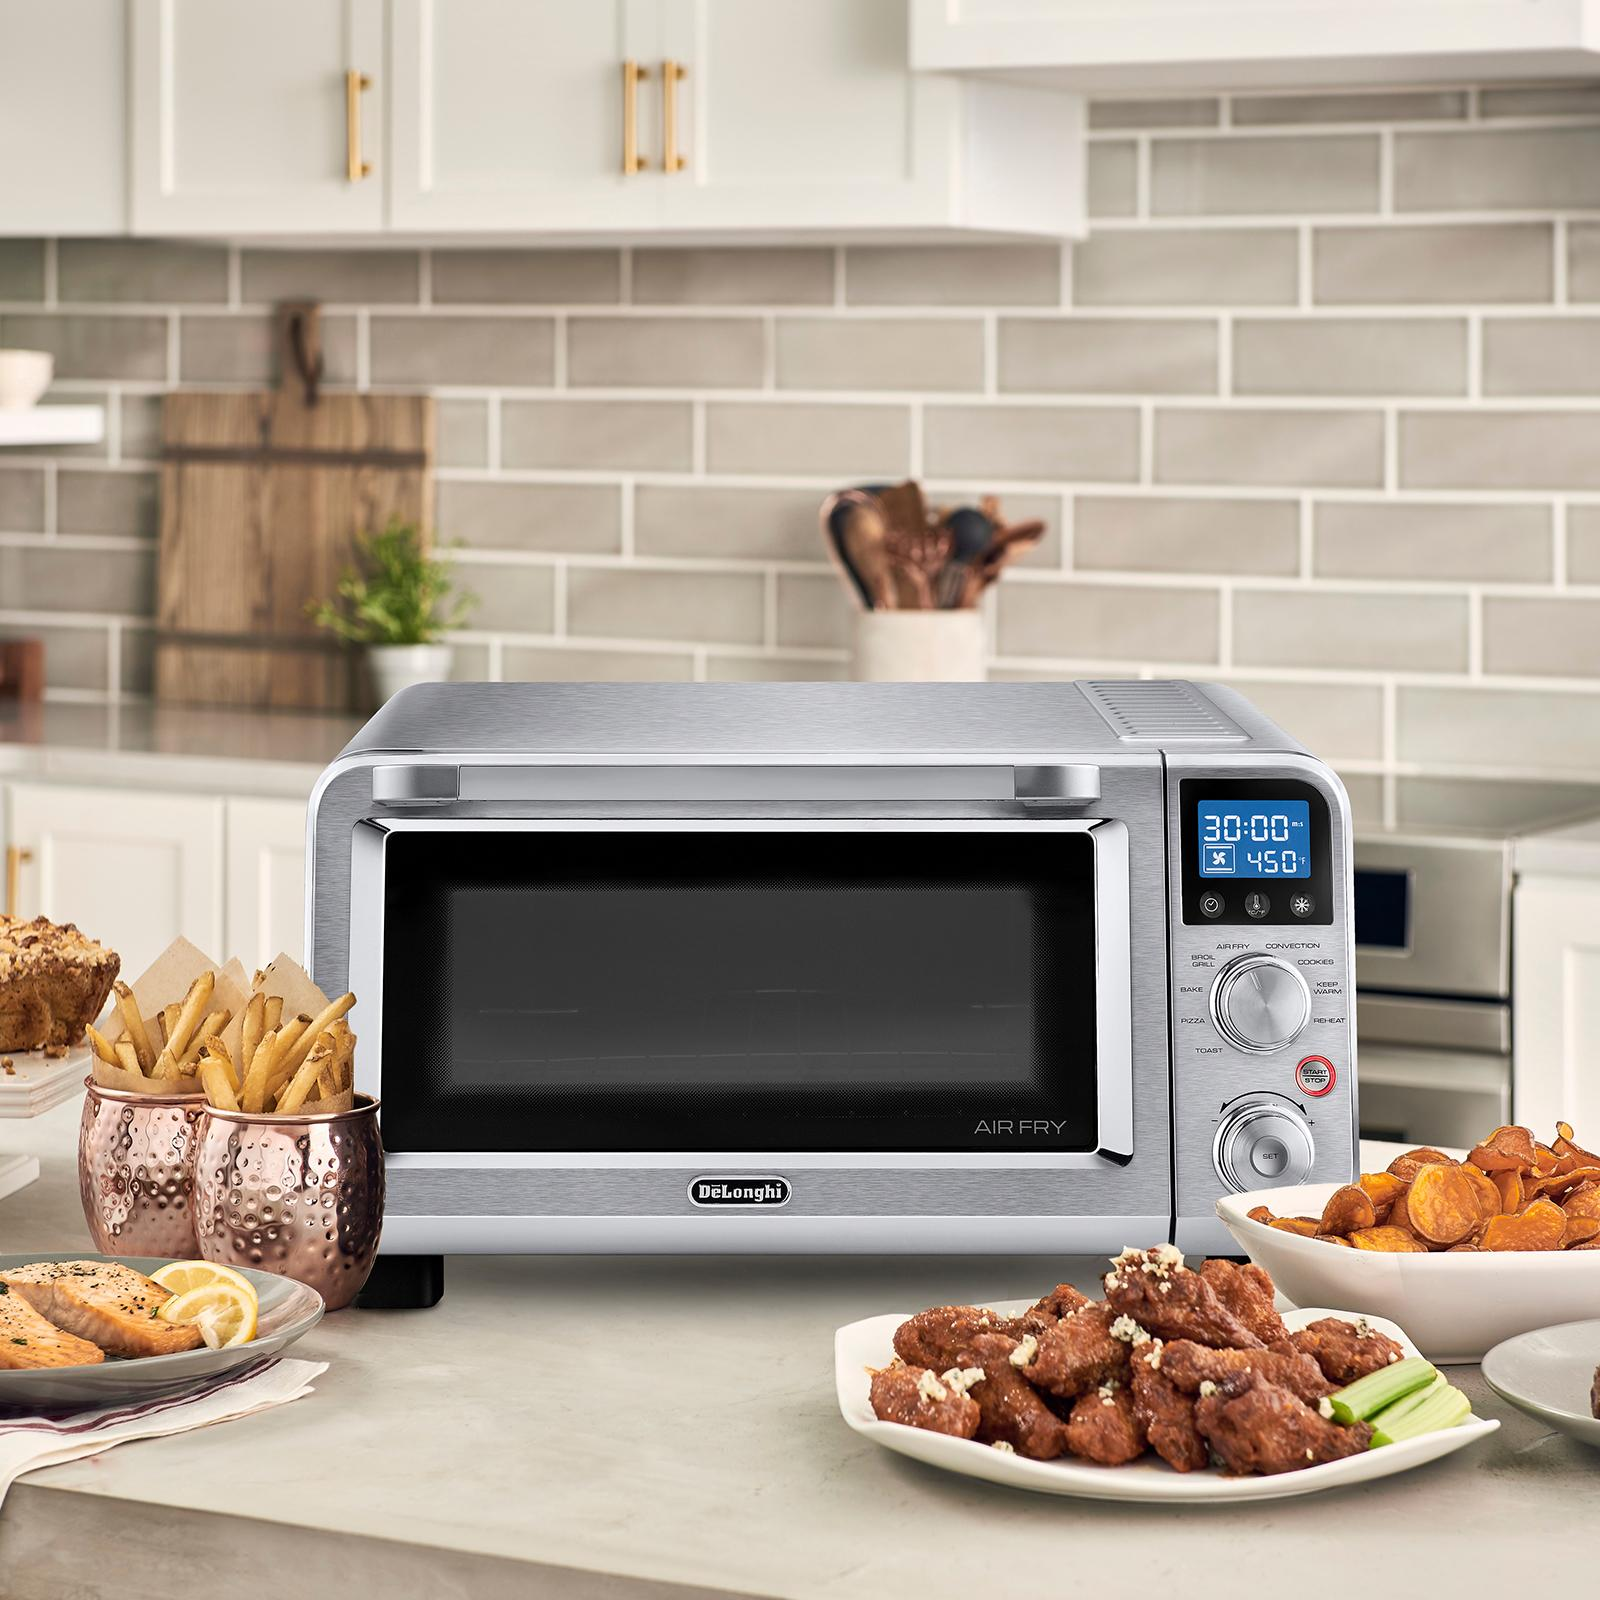 what foods are best cooked in a convection oven